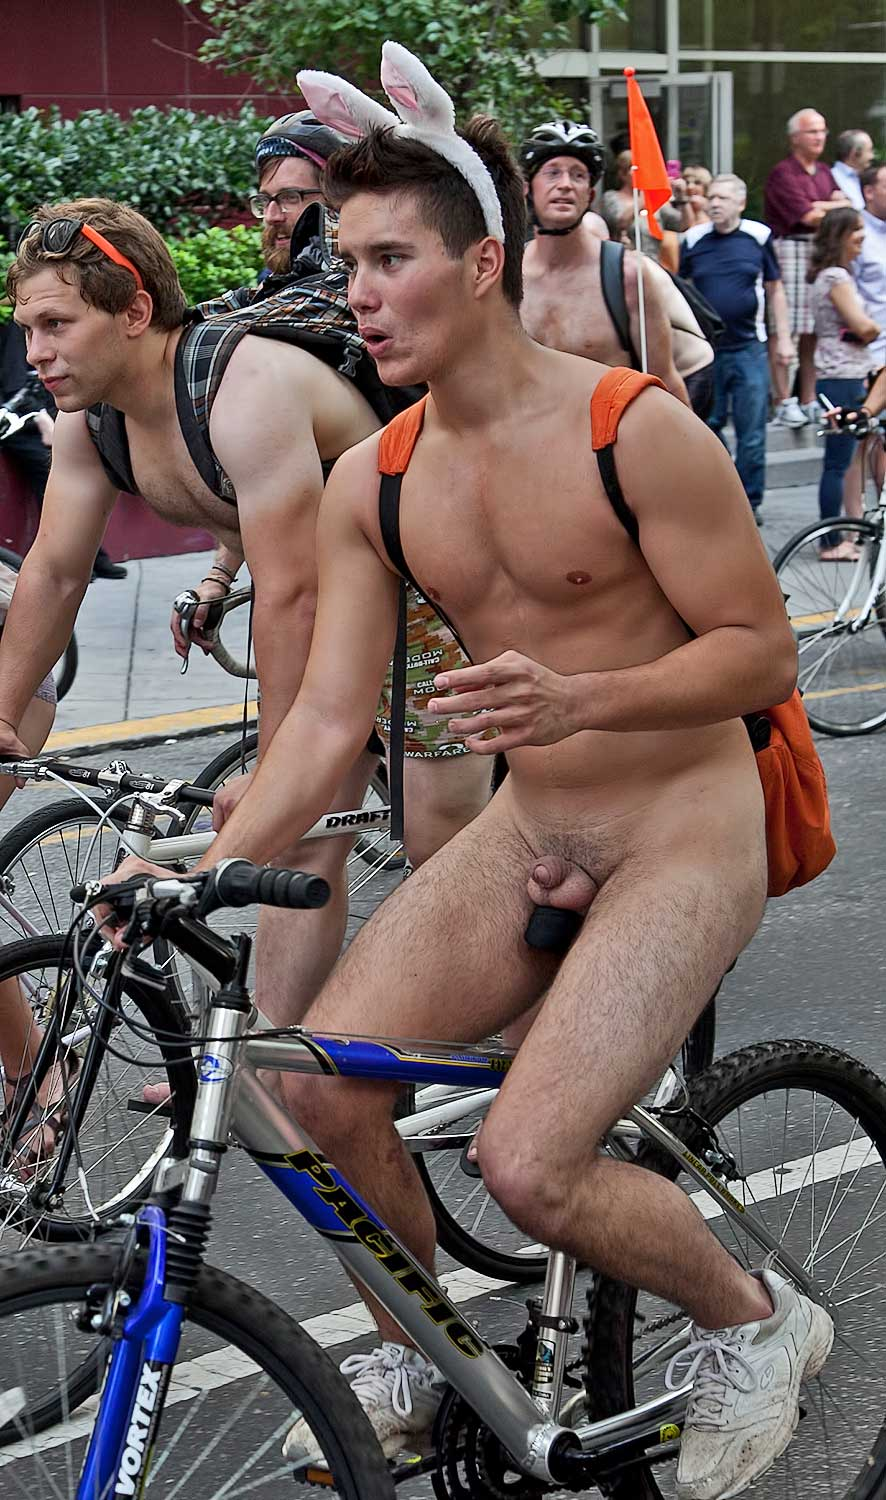 male-nudity-public-pictures